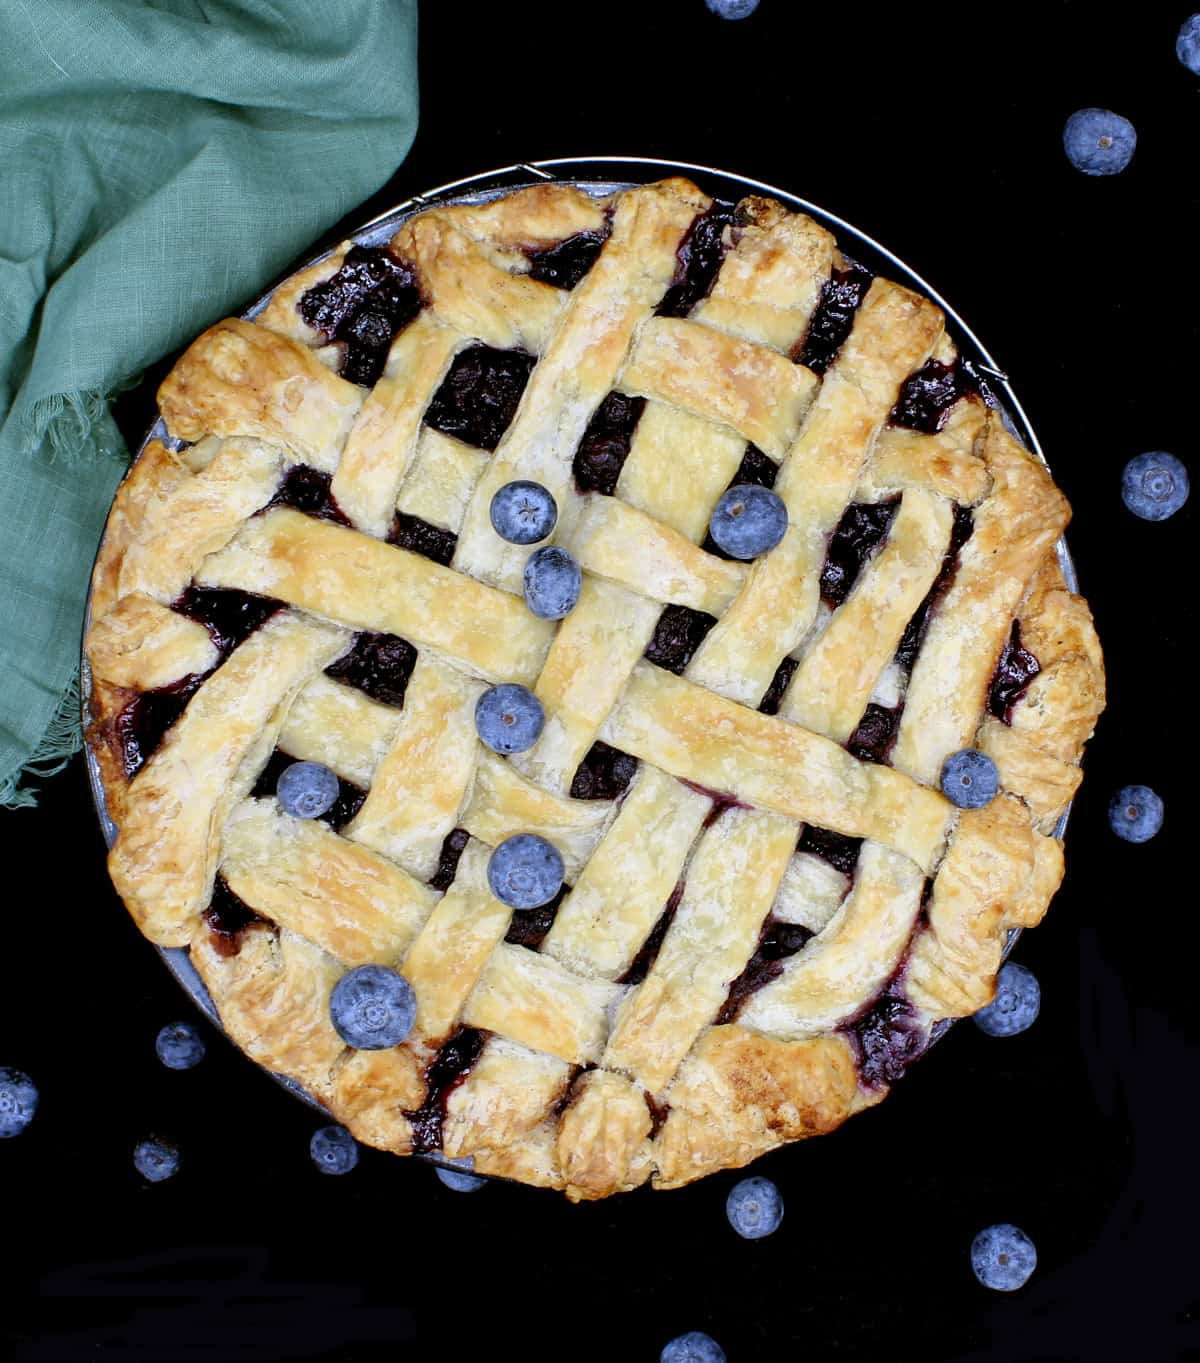 A vegan blueberry pie with a lattice top and filling showing with blueberries scattered around. and a green napkin on a black background.